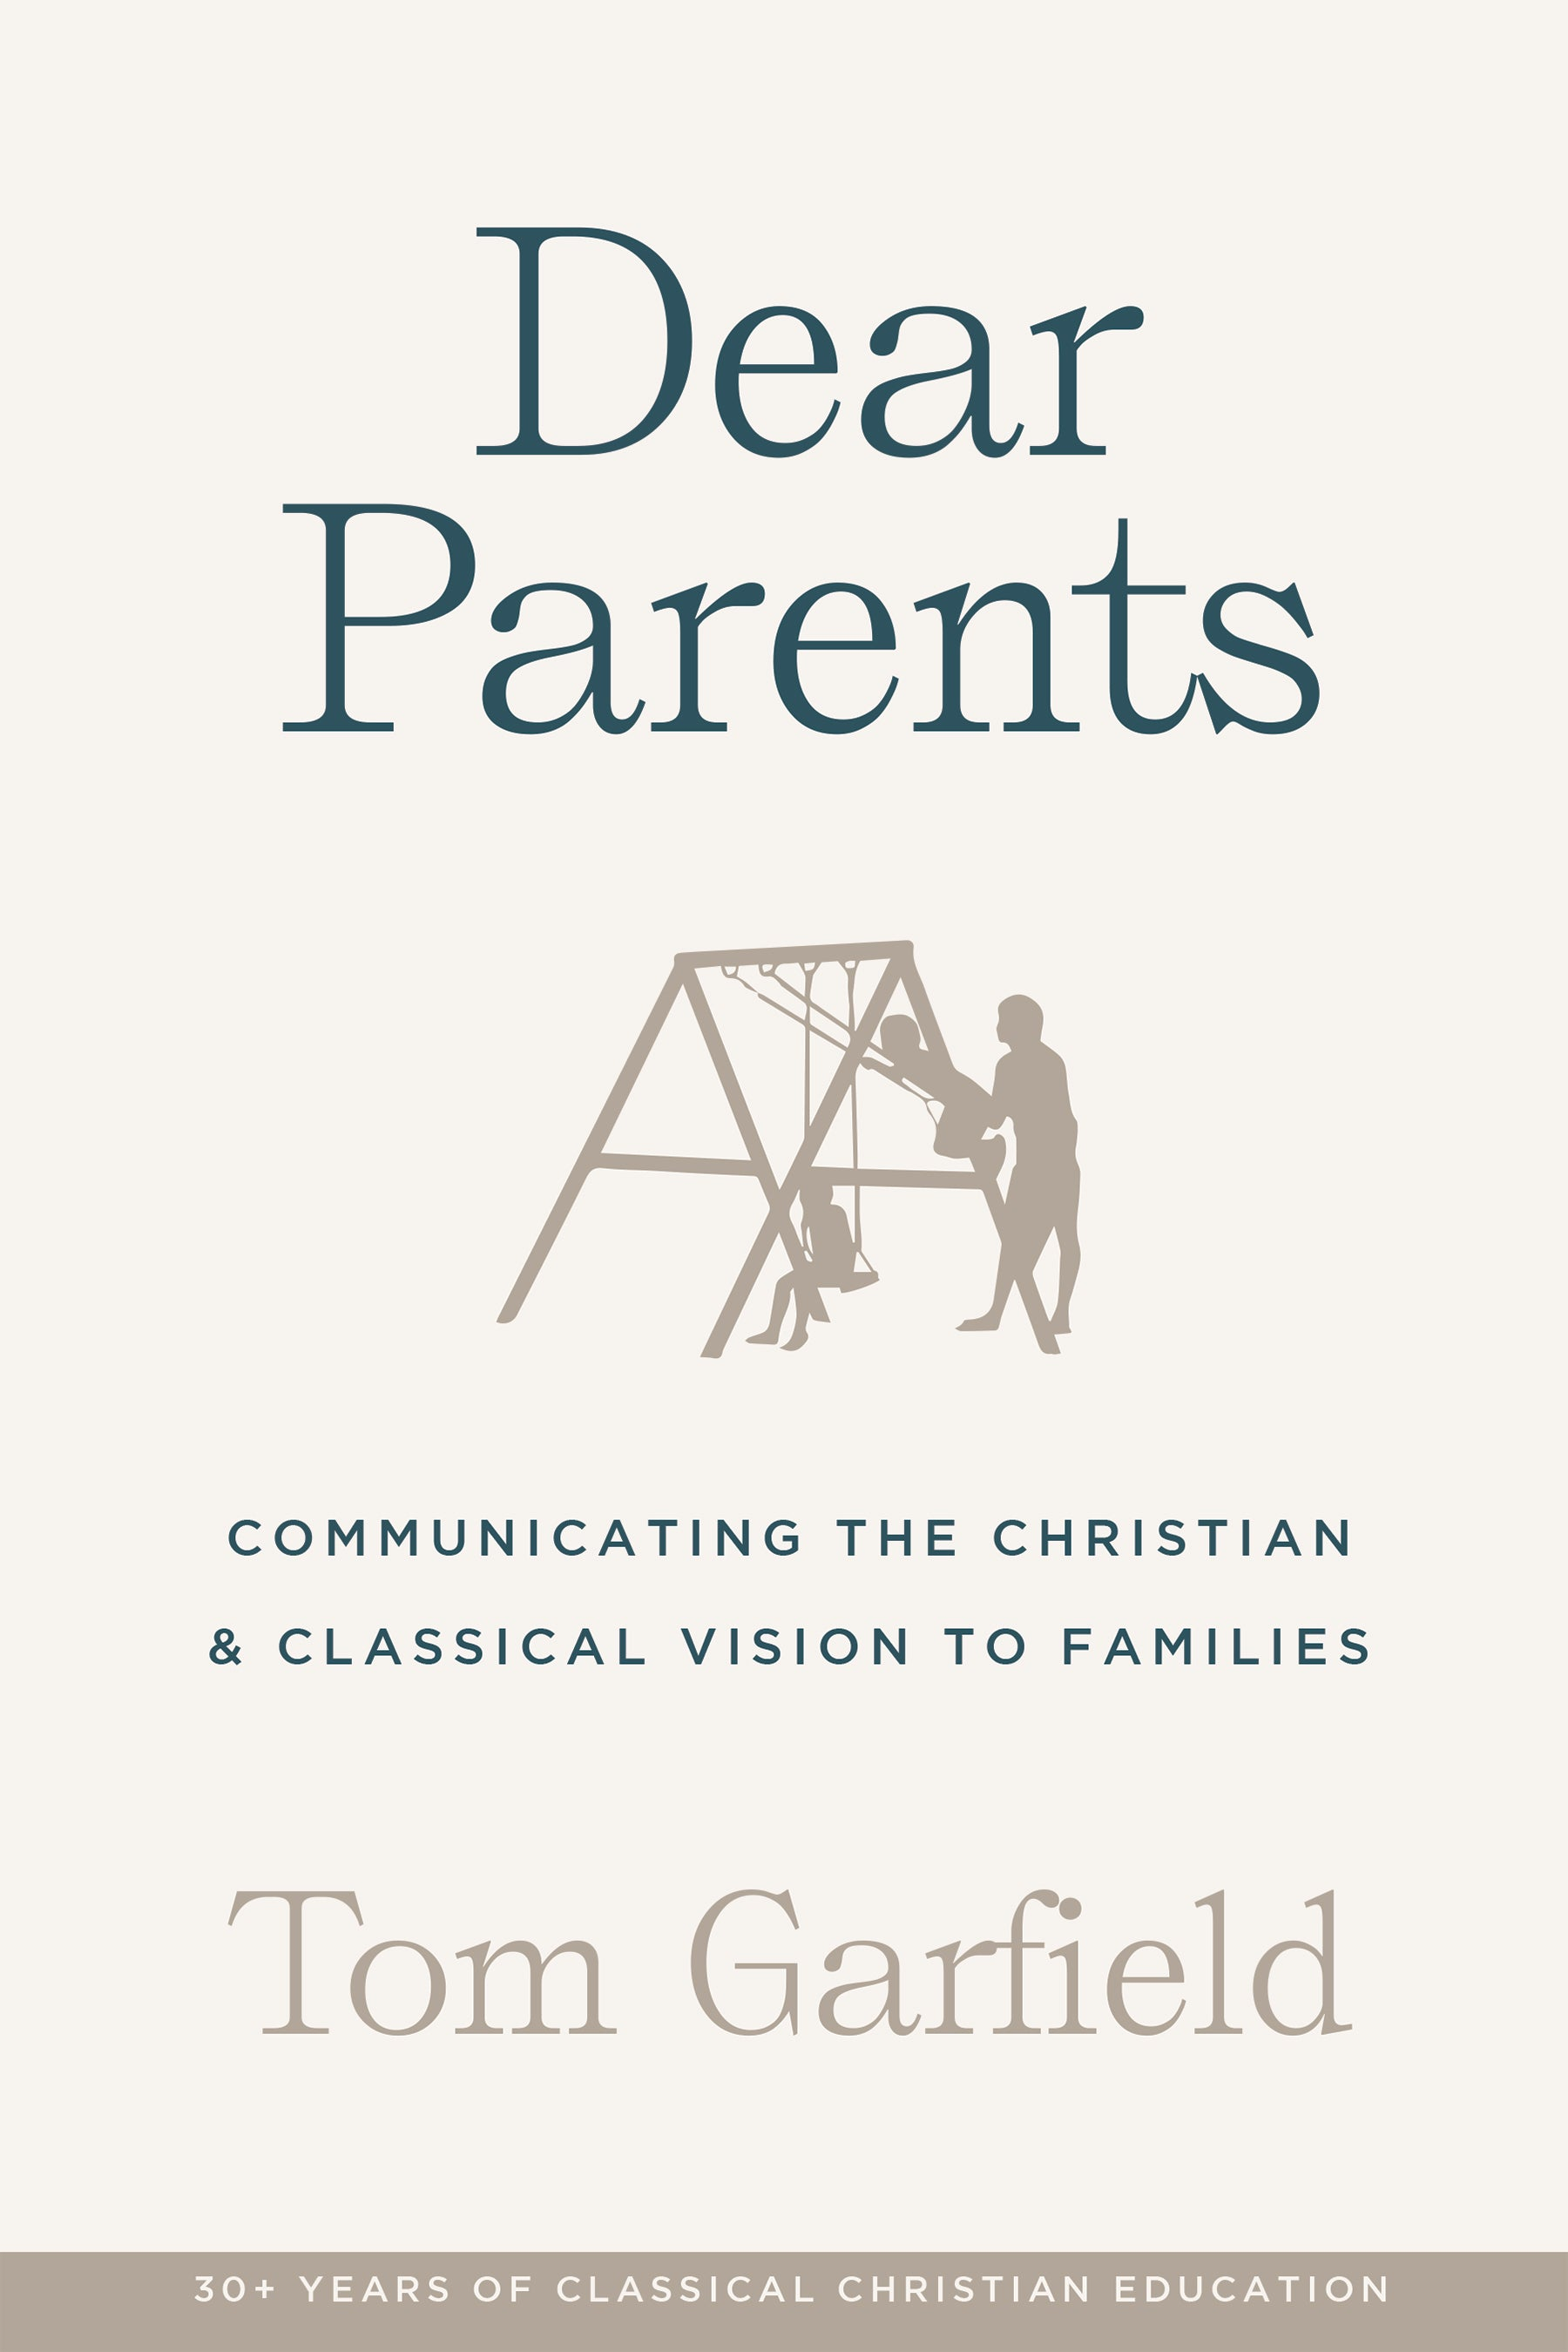 Dear Parents: Communicating the Christian & Classical Vision to Families